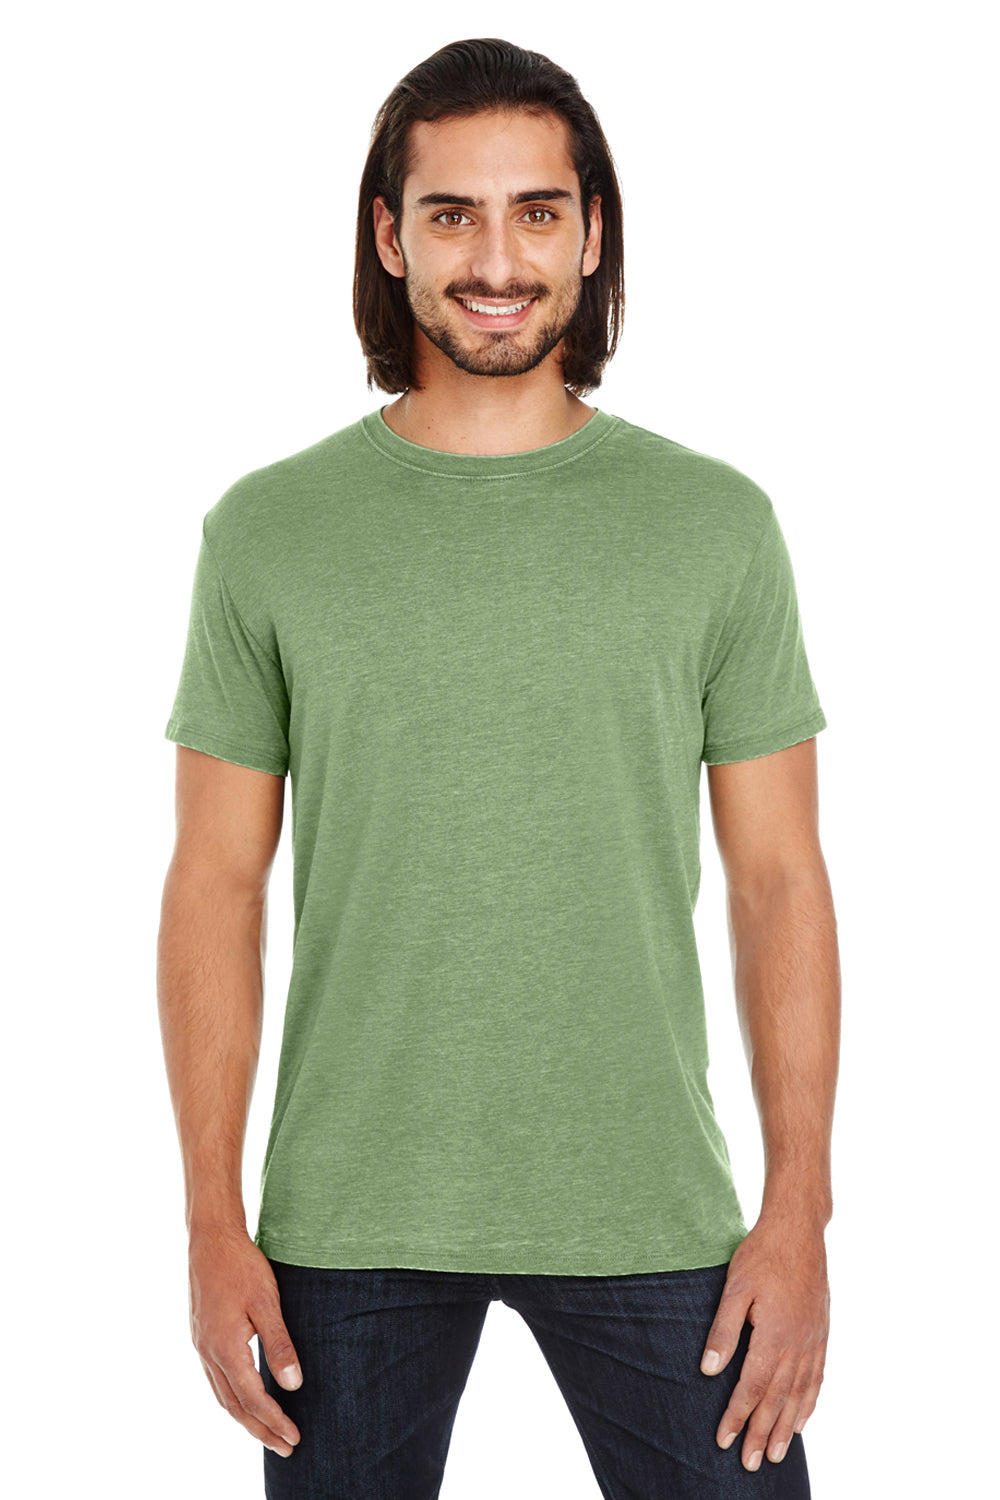 Threadfast Apparel 108A Mens Vintage Dye Short Sleeve Crewneck T-Shirt Grass Green Front